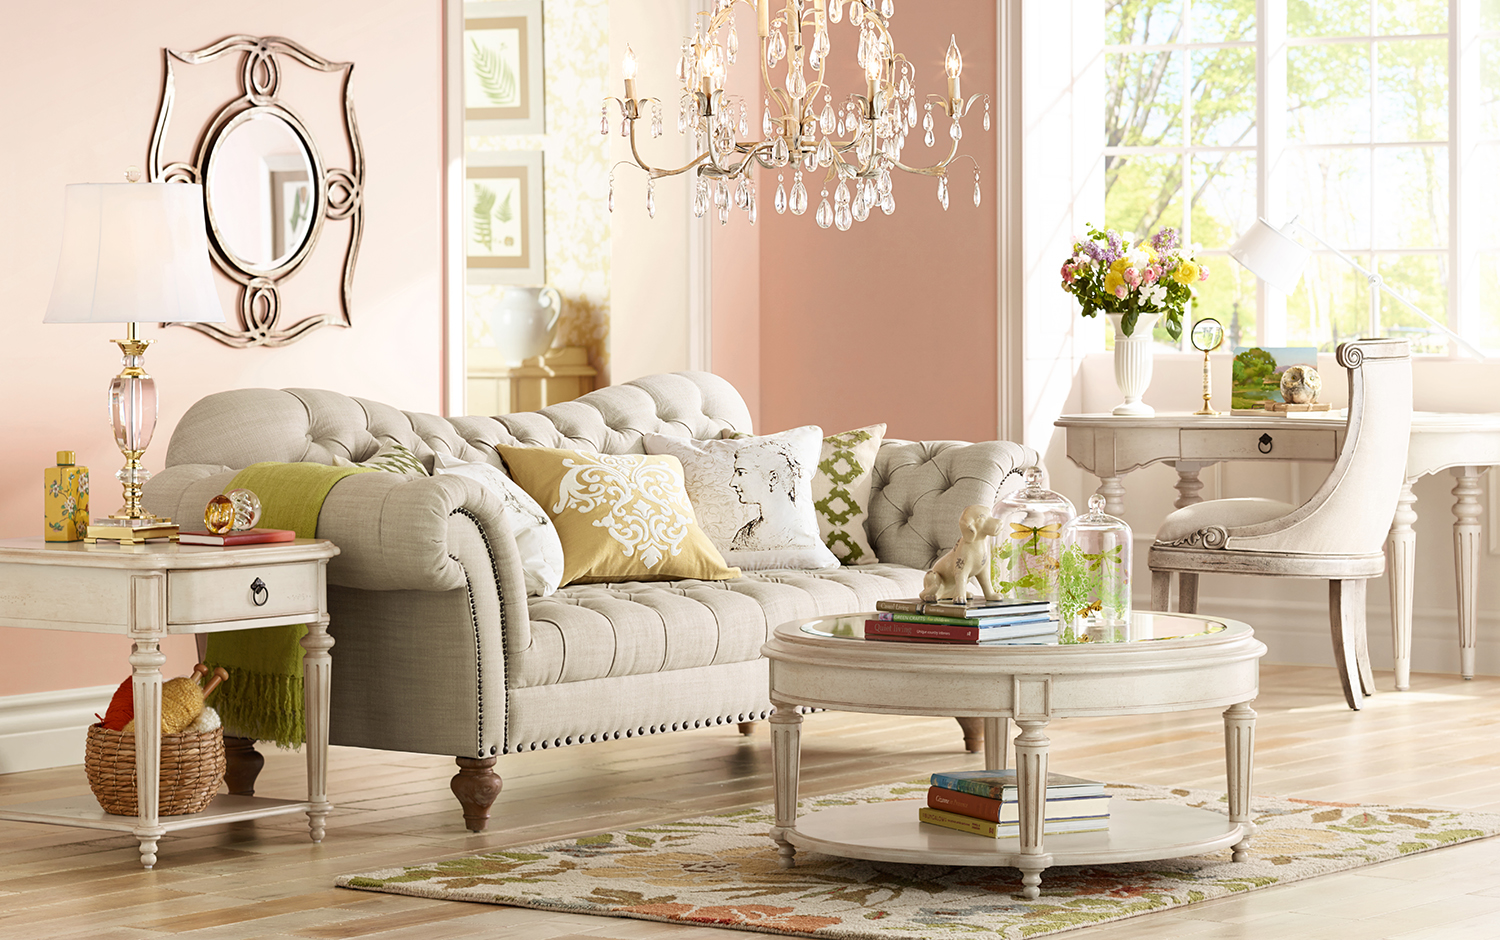 Shabby Chic Colors For 2015 : Color of the year 2016 pantone rose quartz lamps plus011415 shabby